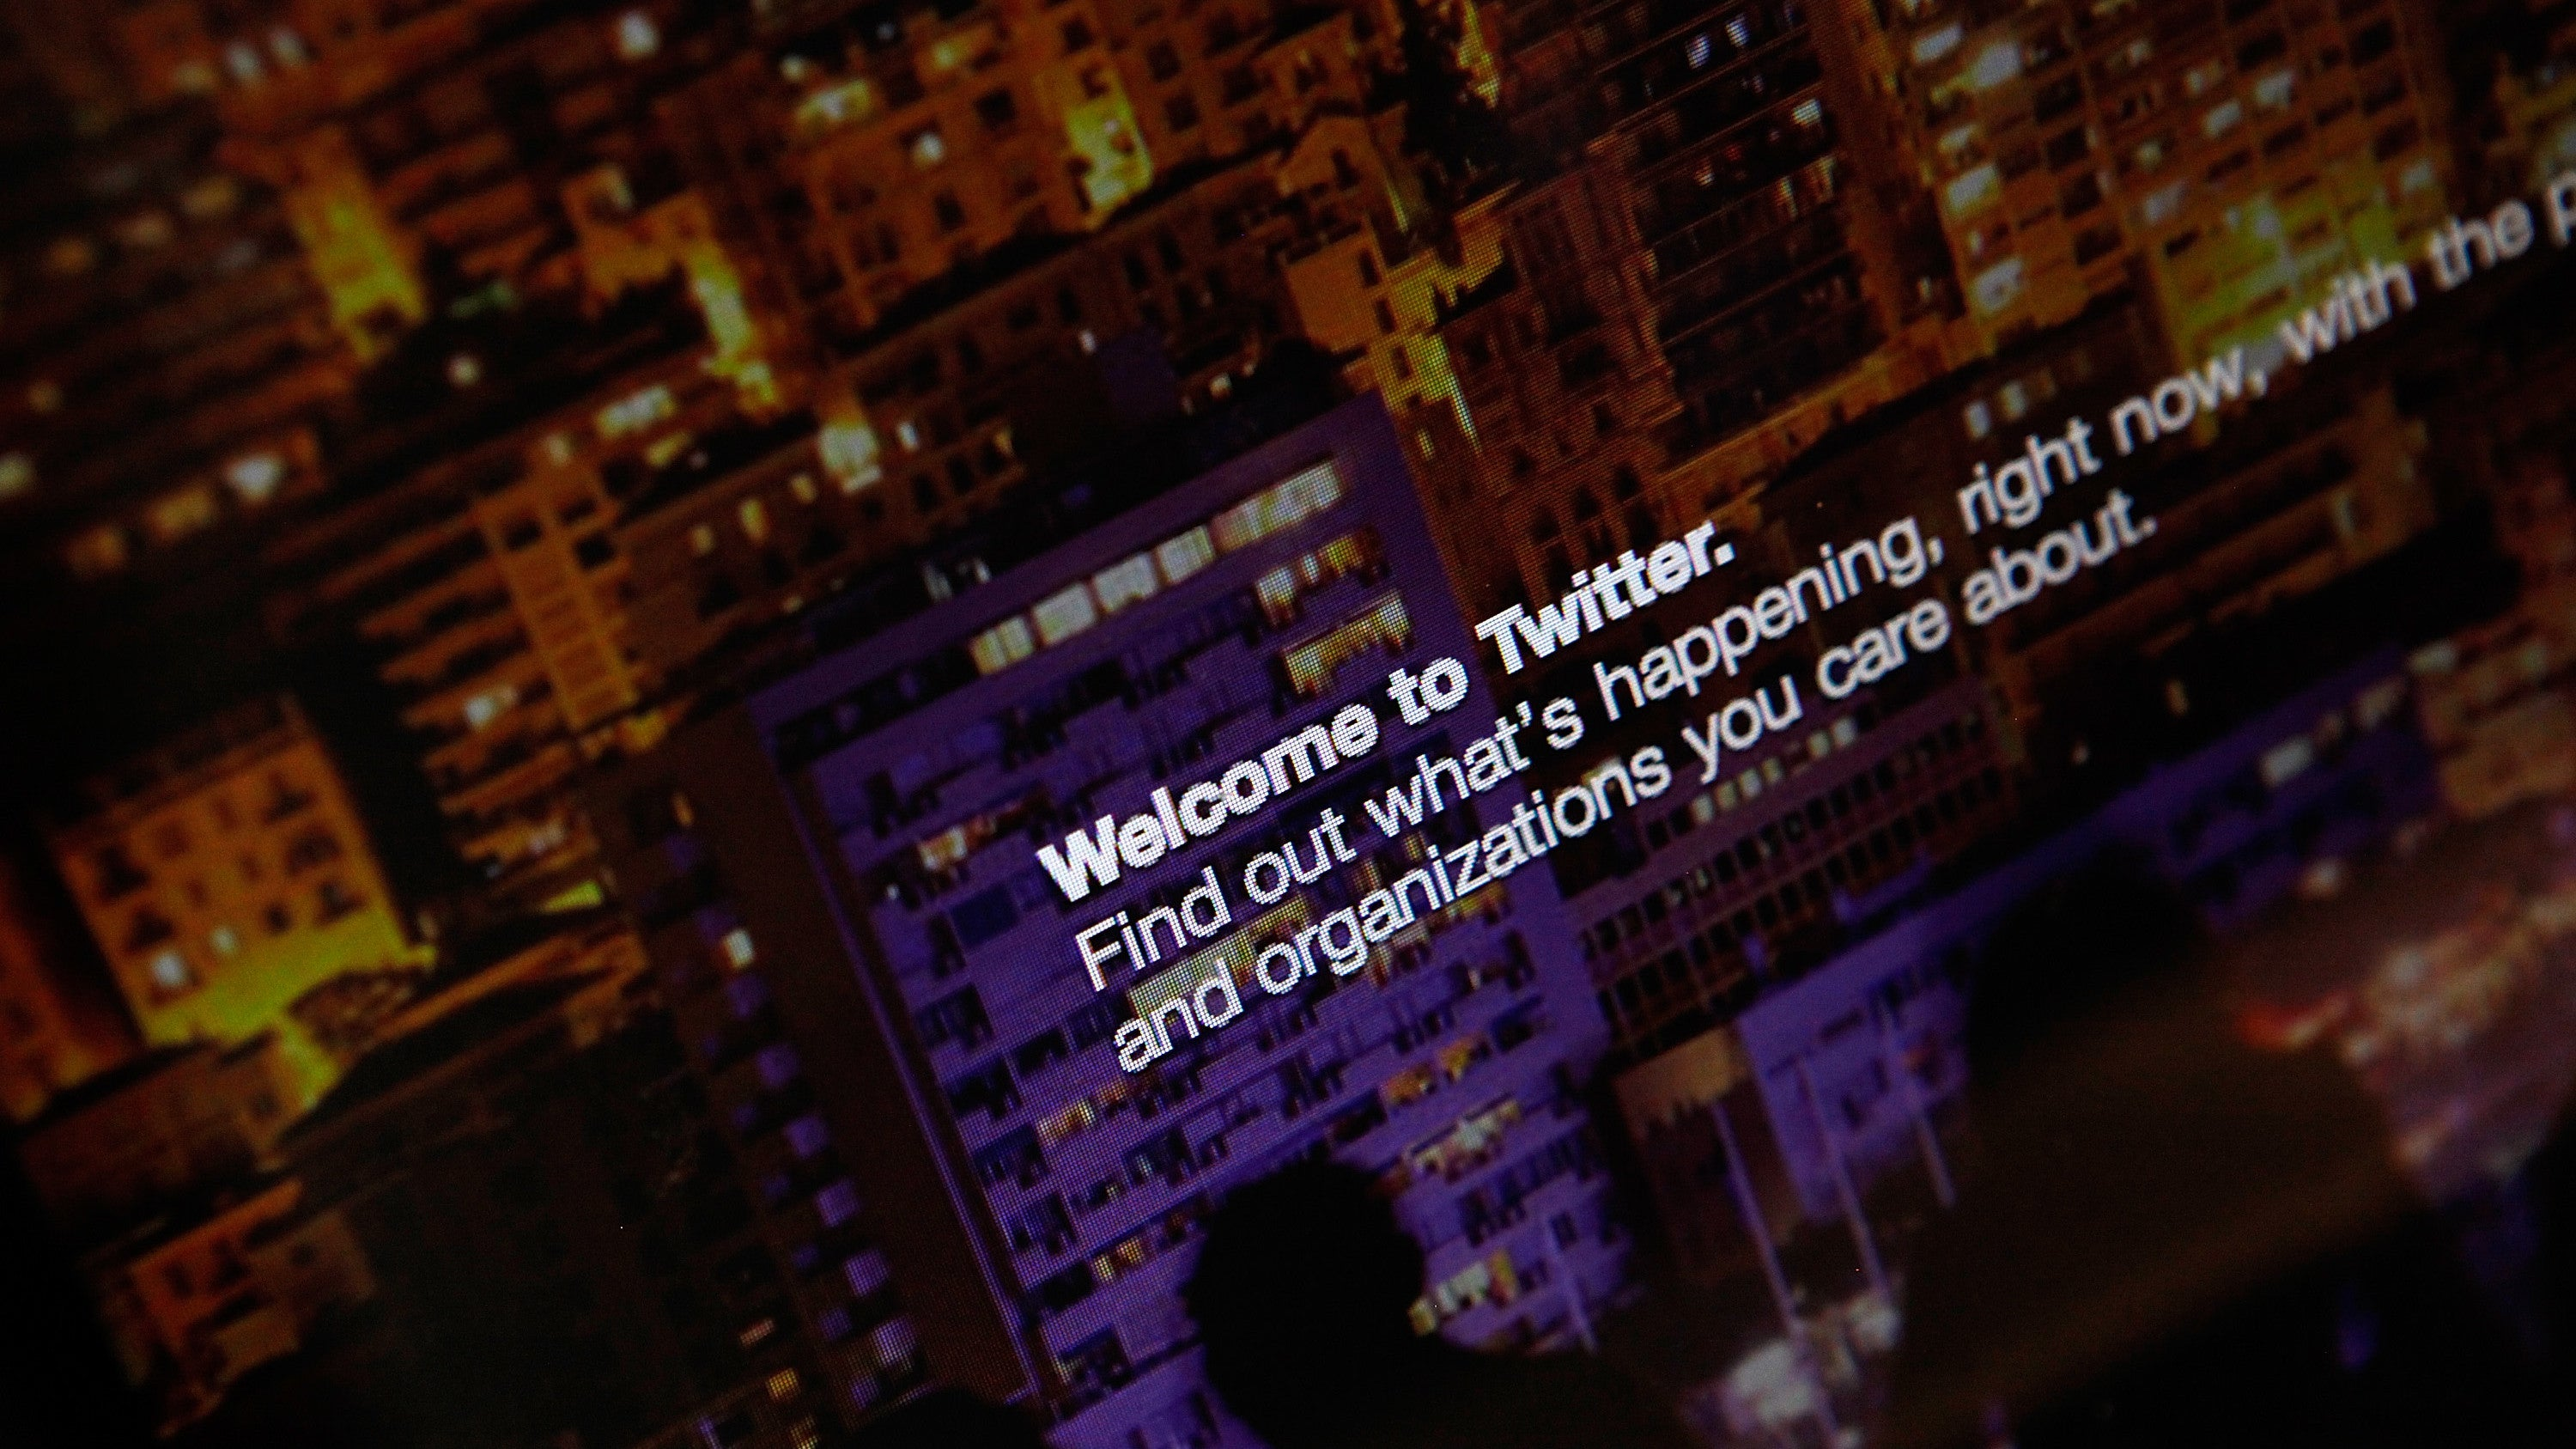 Civil Rights Groups Mostly Unimpressed By New Twitter Policy Against 'Dehumanising' Language